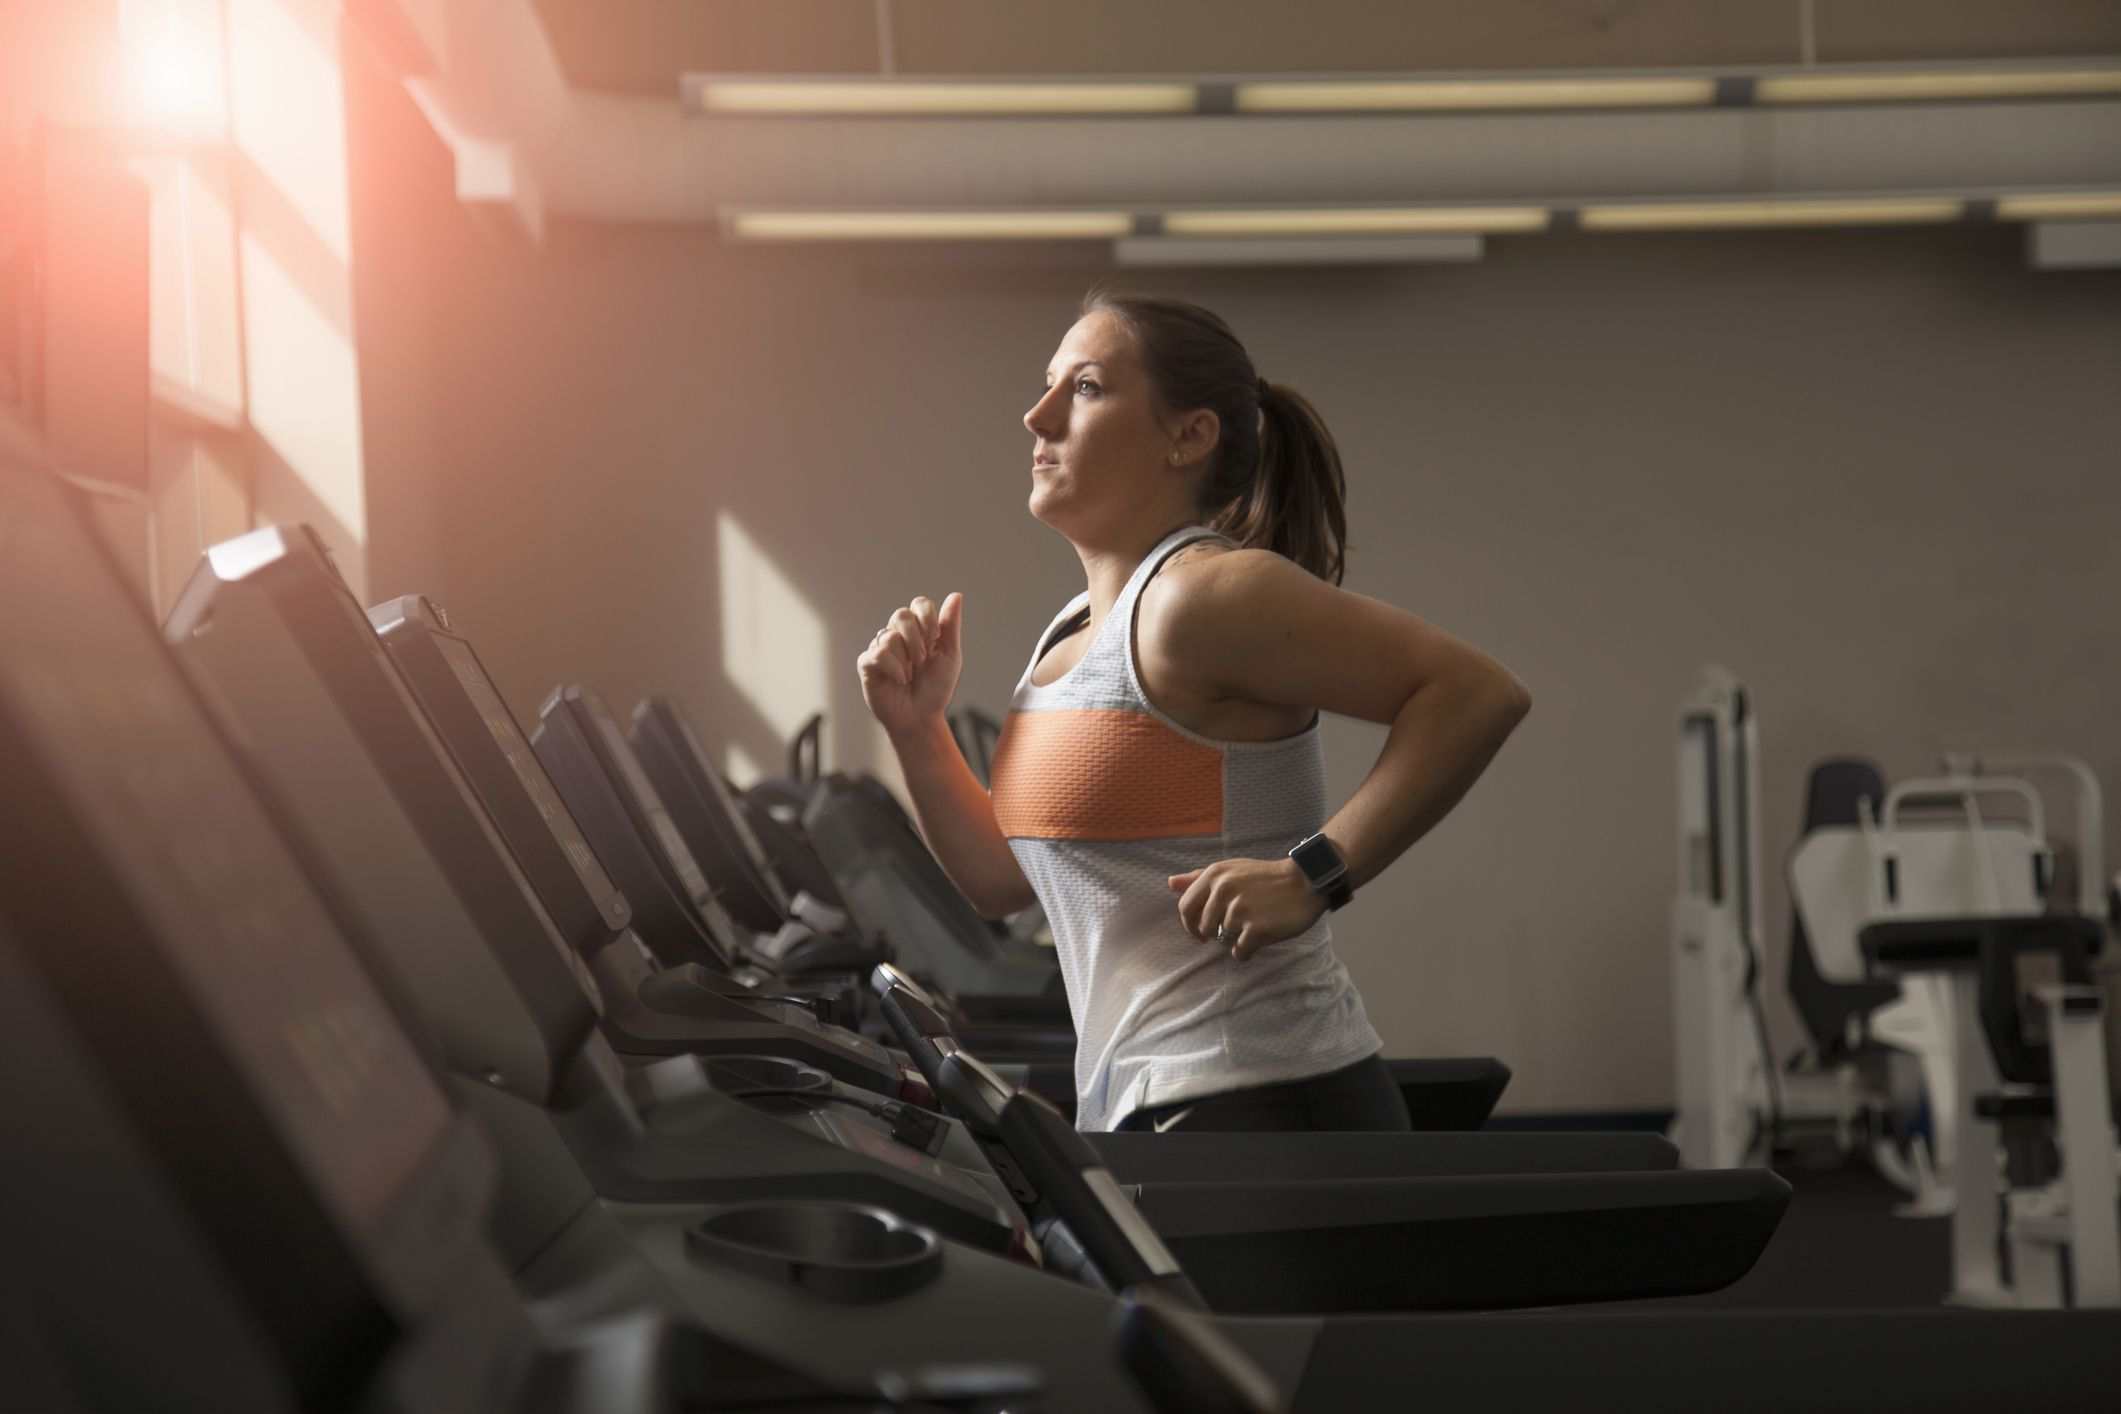 power walking on treadmill to lose weight